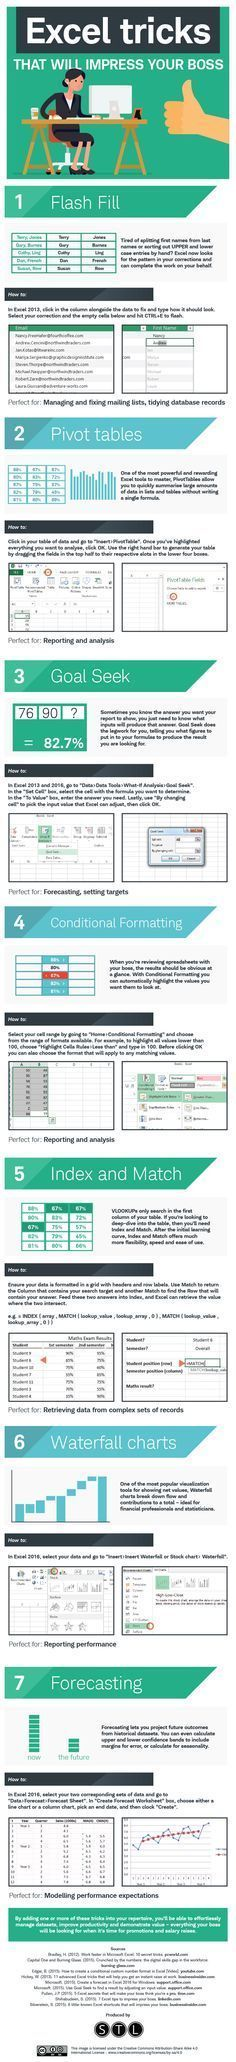 Tom\u0027s Tutorials For Excel Summing Ranges From Multiple Worksheets